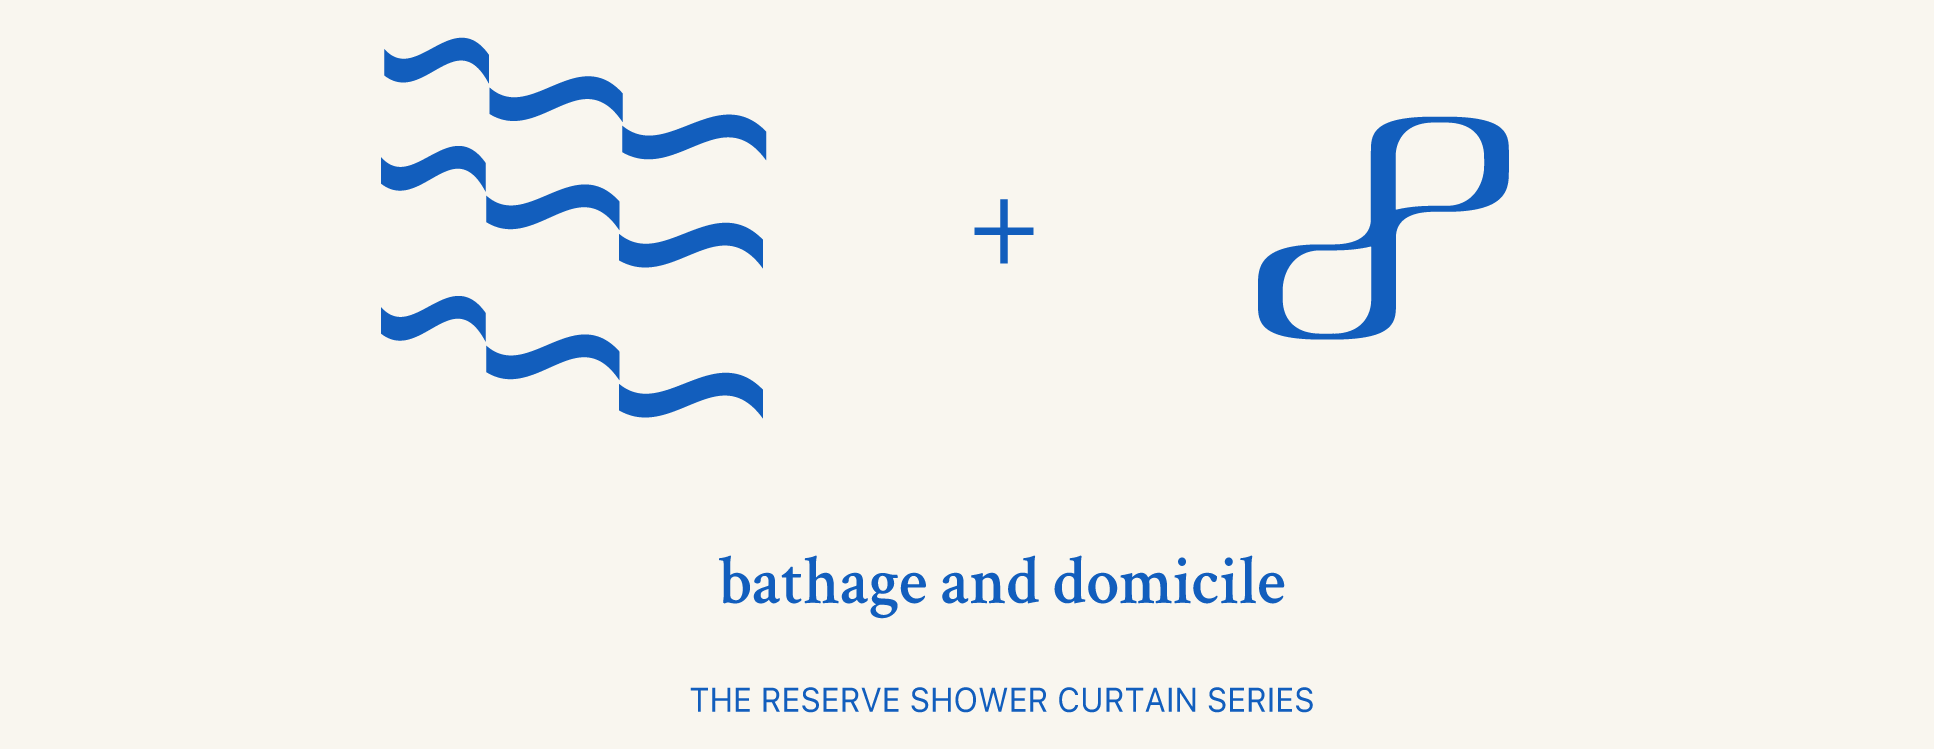 bathage-and-domicile.png